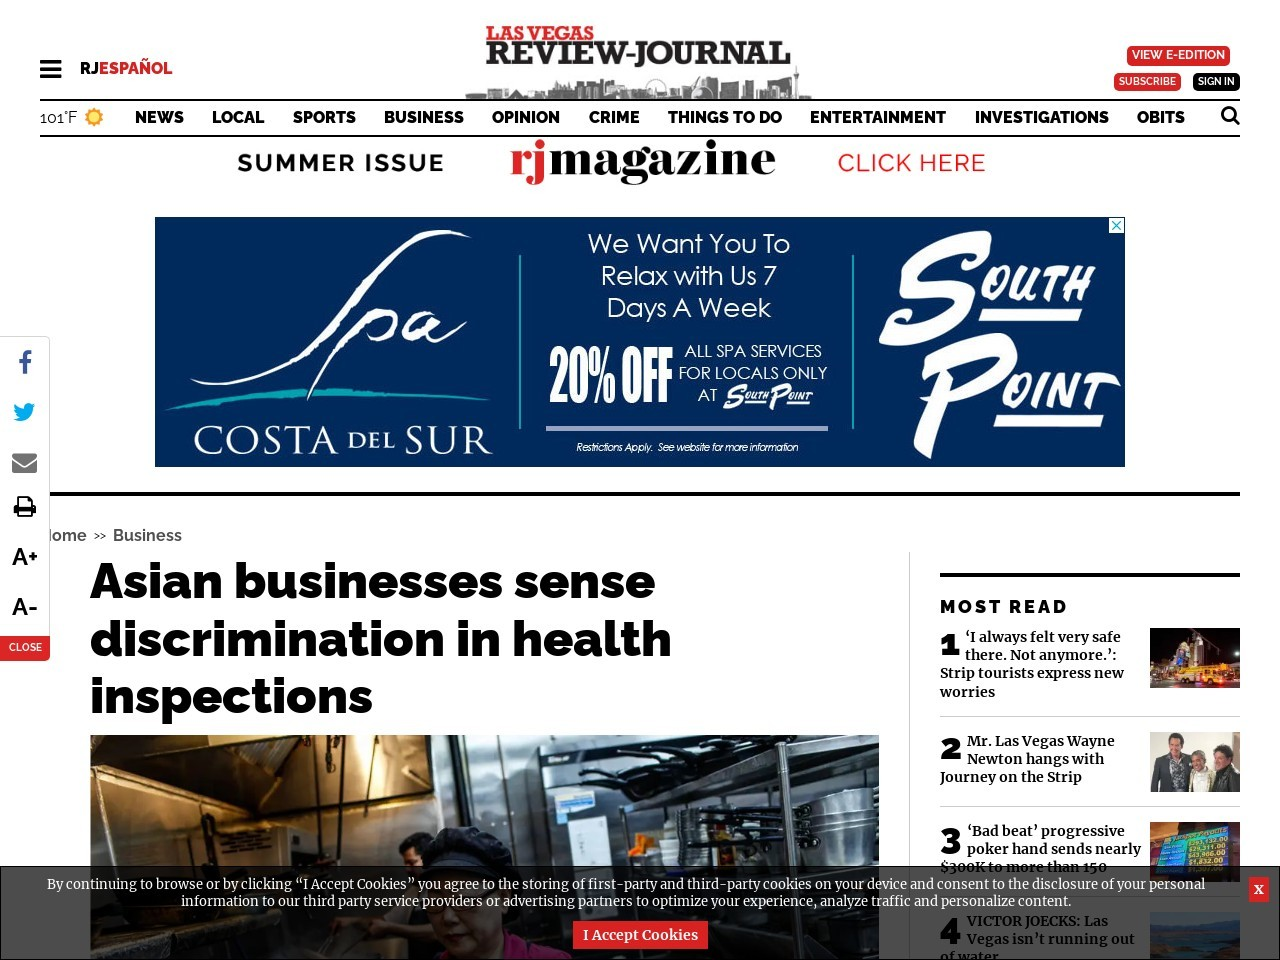 Asian businesses sense discrimination in health inspections